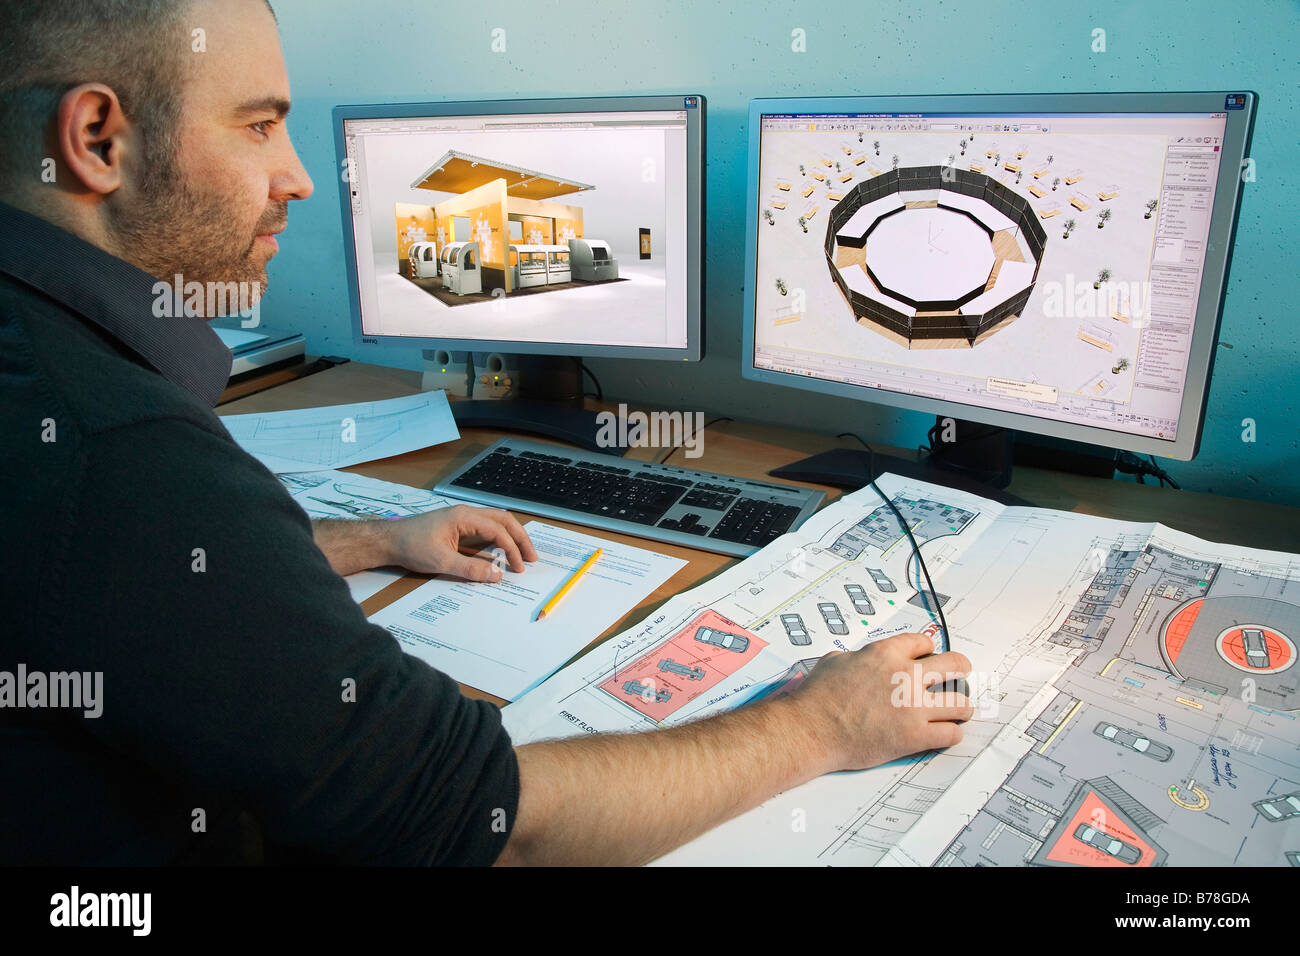 Cad Draughtsman And Designer In The Cad And Design